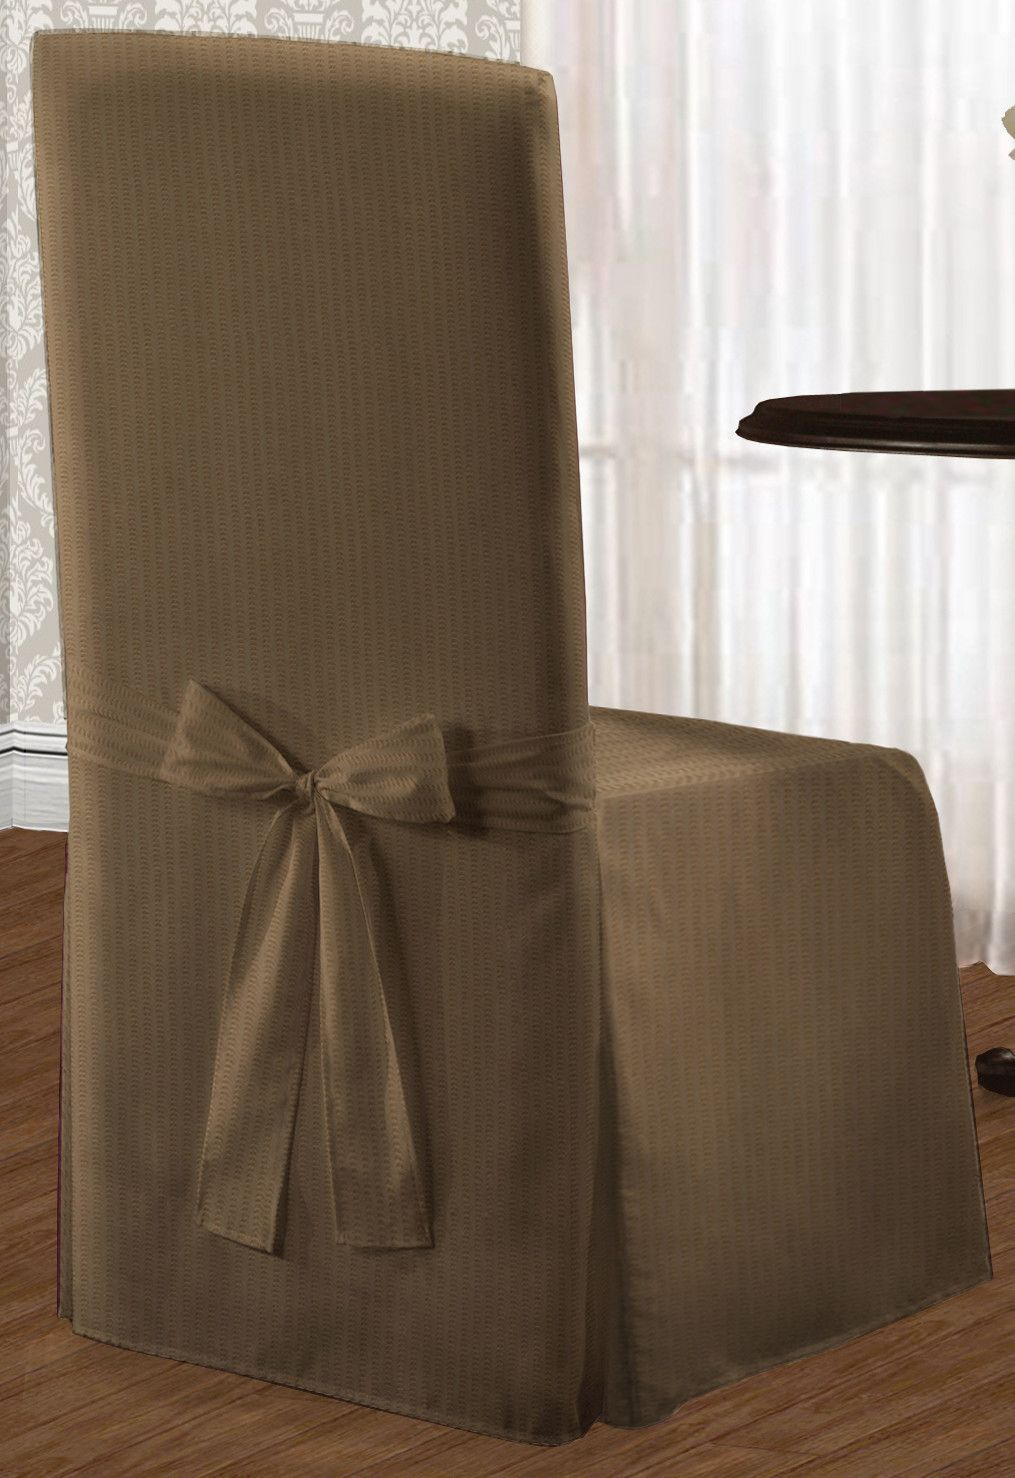 Metro Parson Chair Slipcover   Products   Pinterest